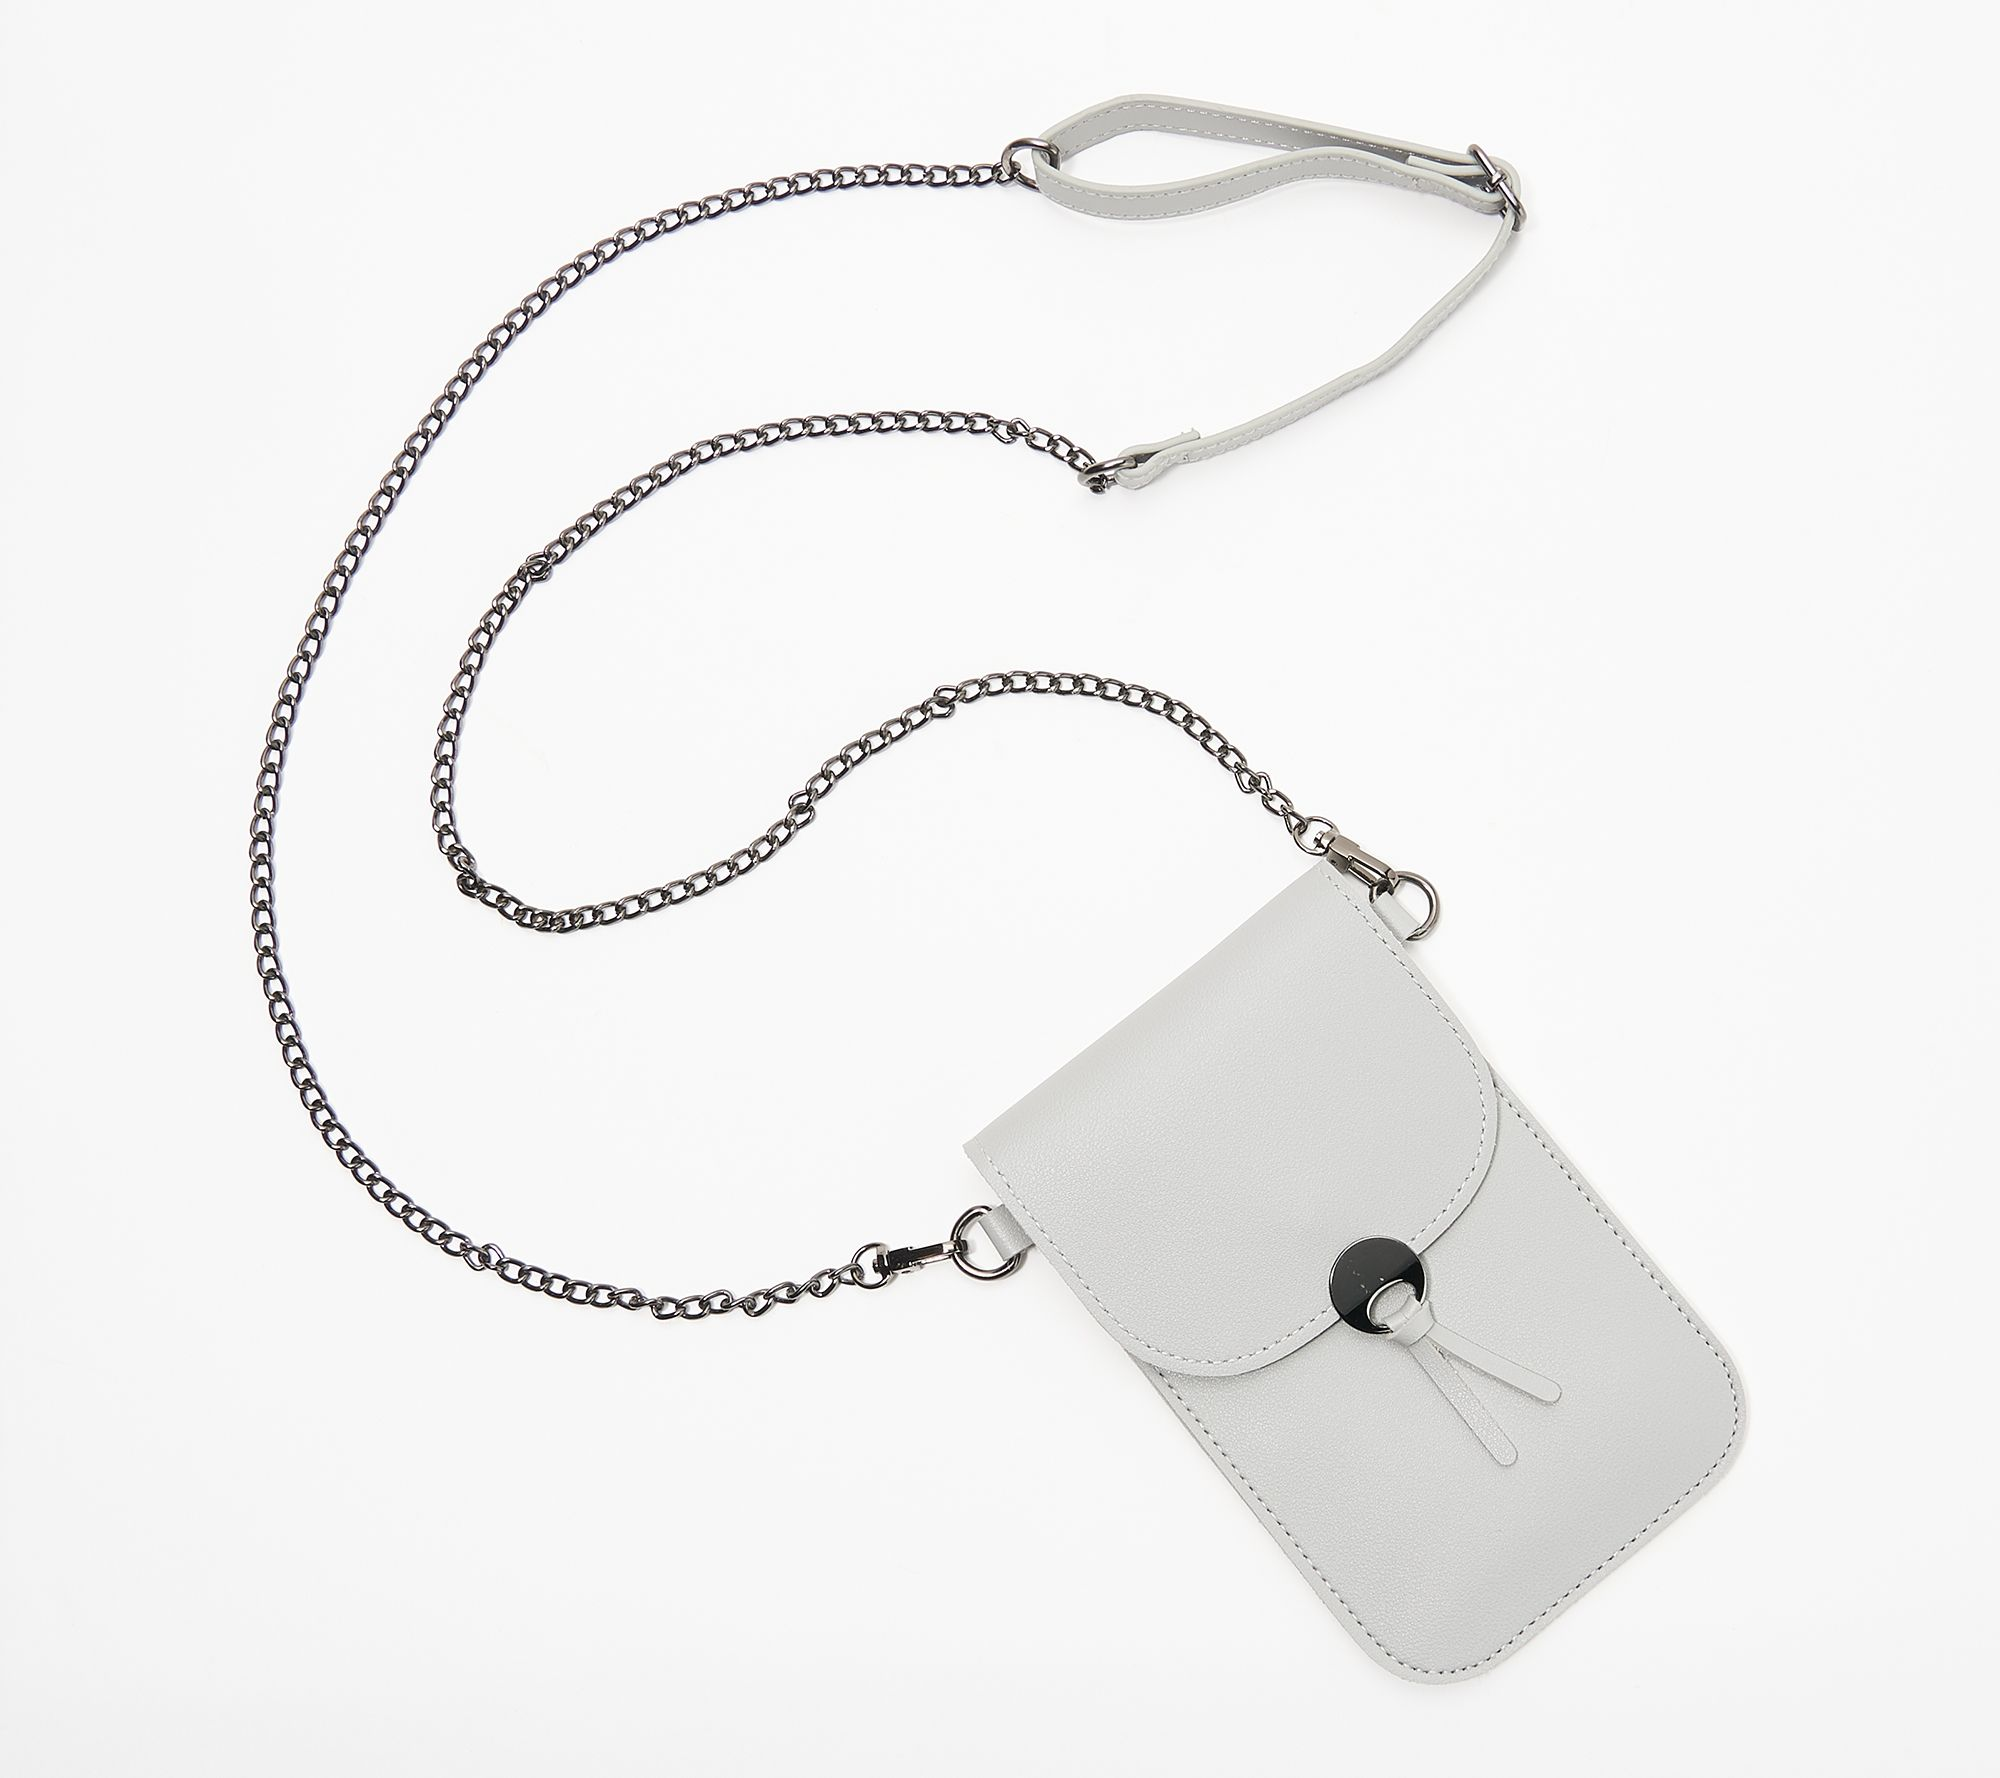 new concept 2120c f3c24 Cell Phone Purse w/ Touch Screen Easy Access by Lori Greiner — QVC.com